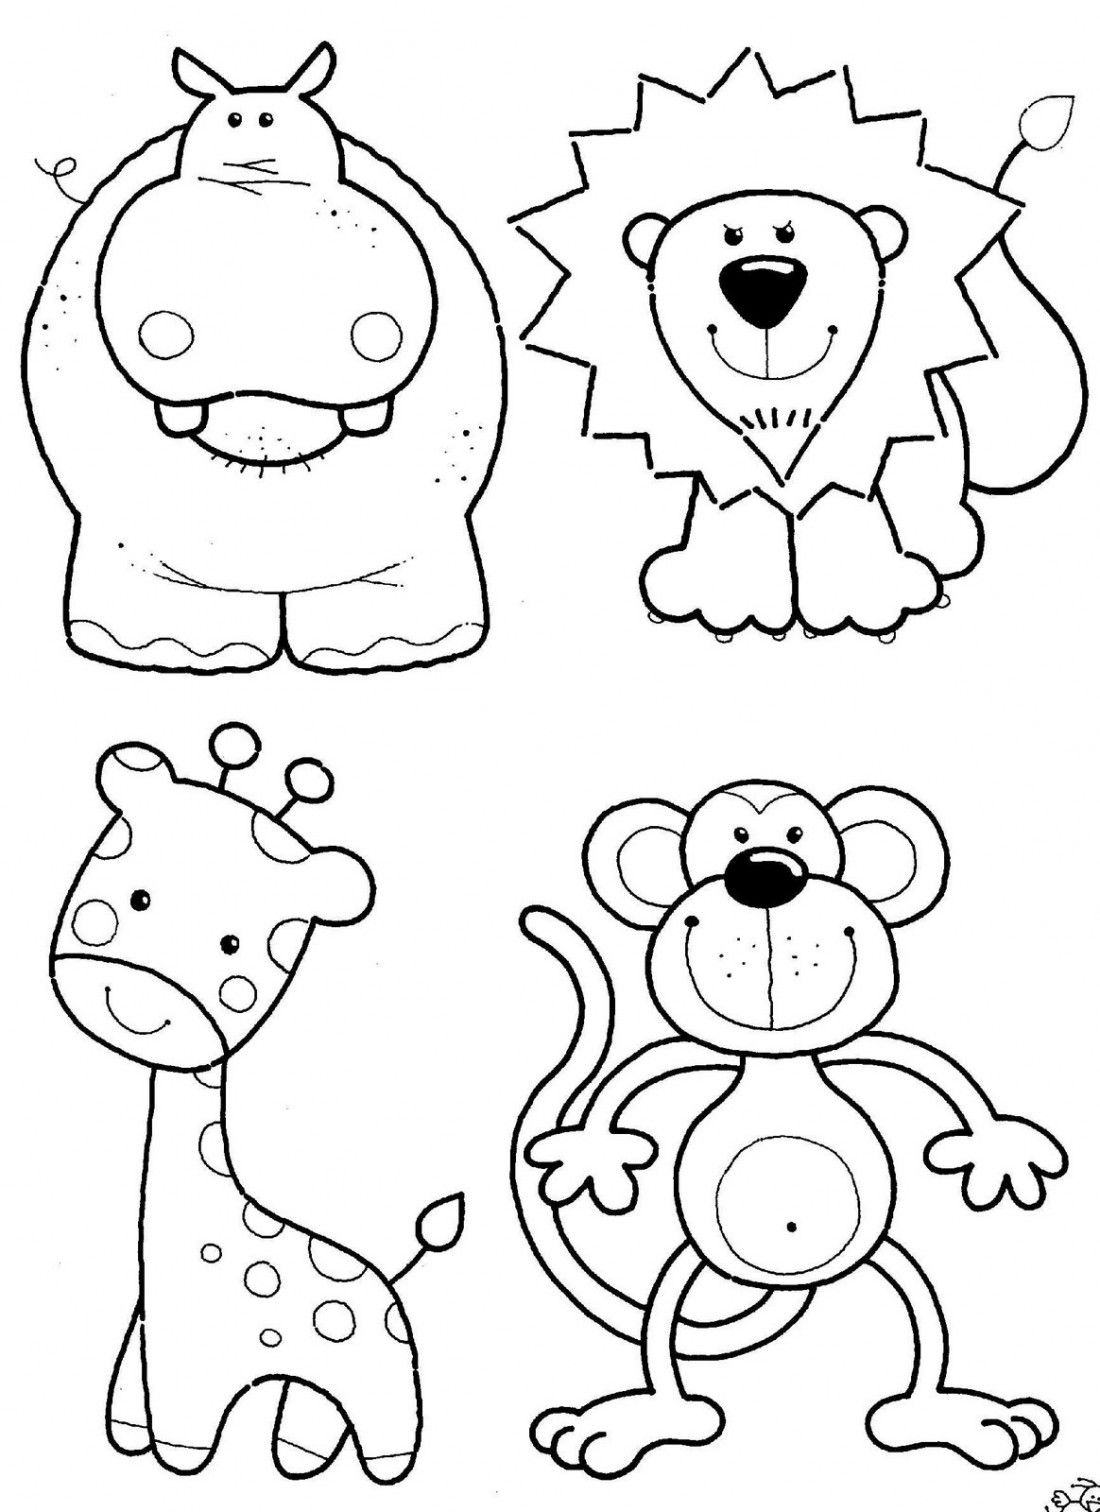 printable animal coloring pages - Coloring Sheets For Toddlers